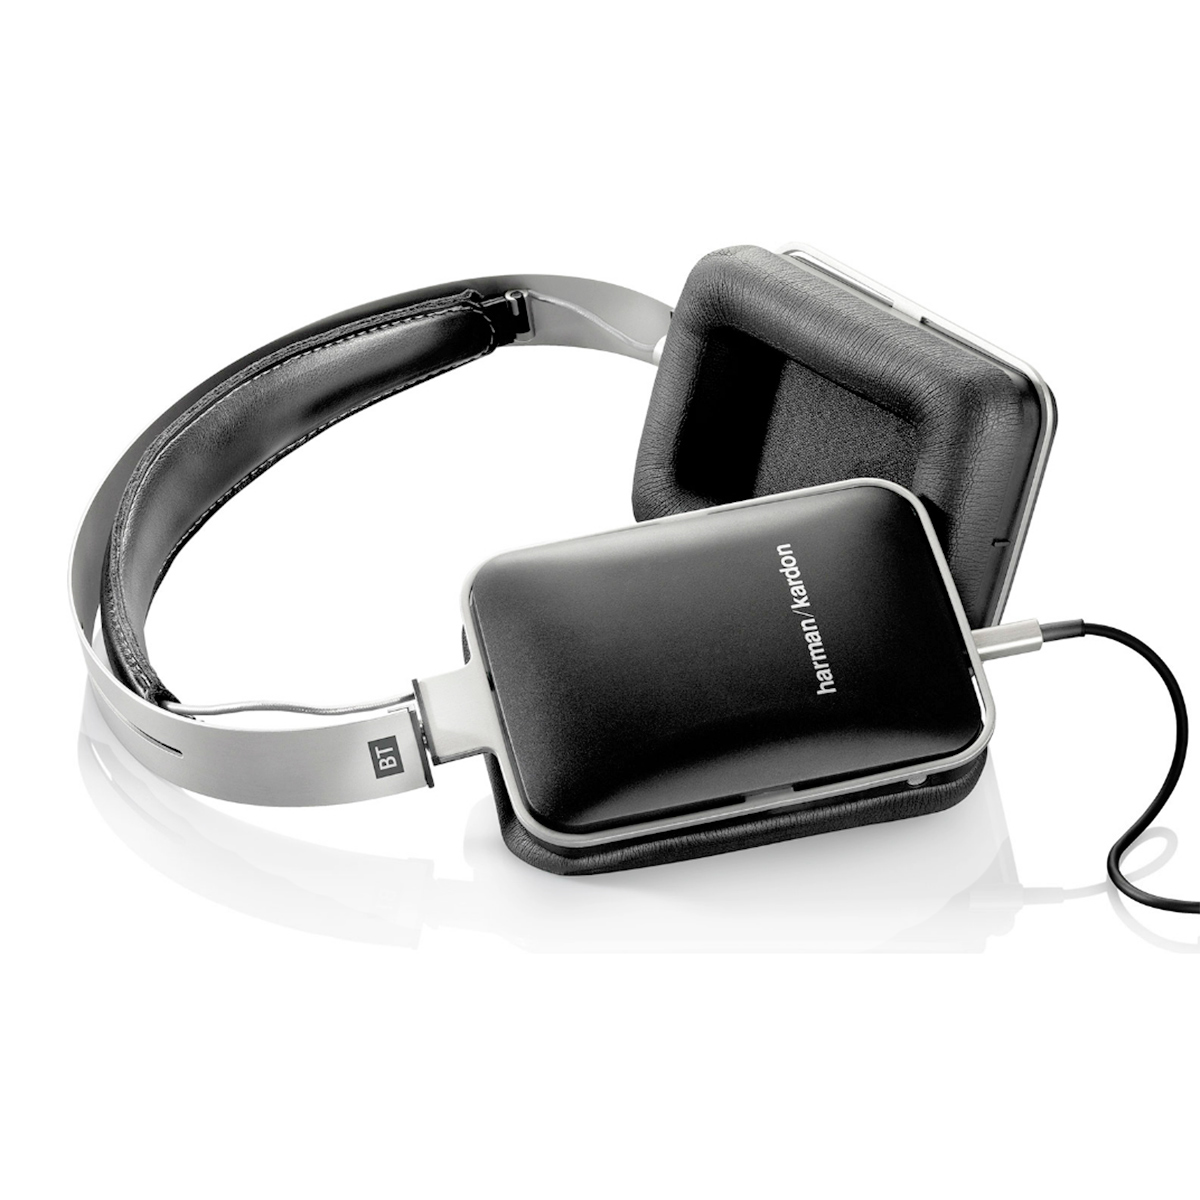 HAR/KARBT - Fone de Ouvido On-ear c/ Bluetooth HAR / KAR BT - Kardon